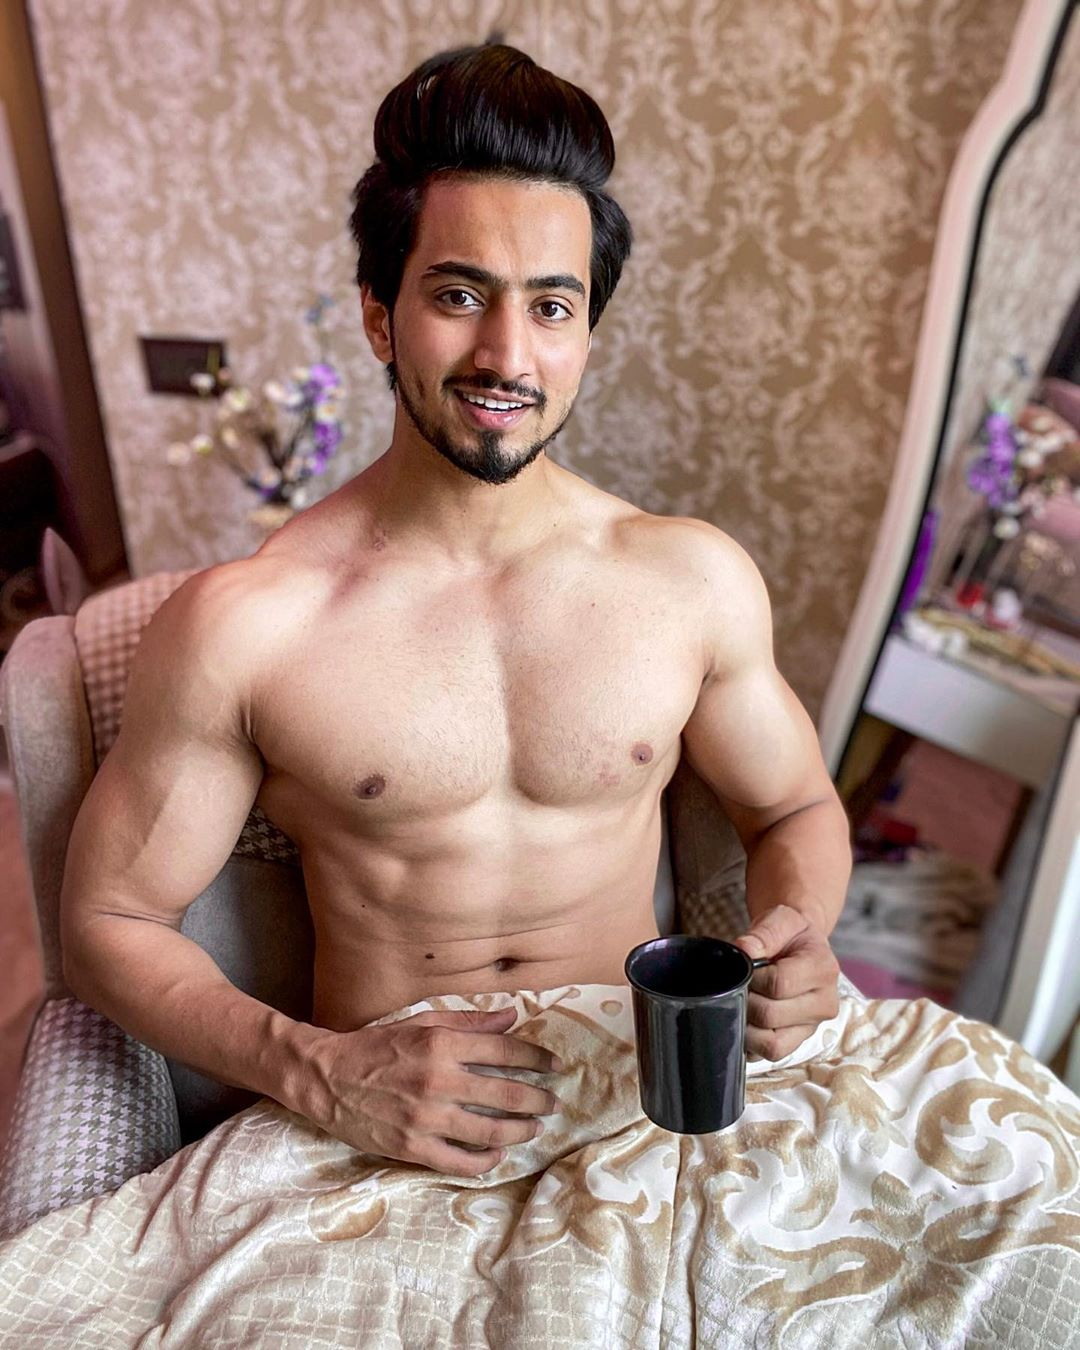 Faisal Shaikh Top Model India - Flaunting his bare body having Cup of Coffee on Bed